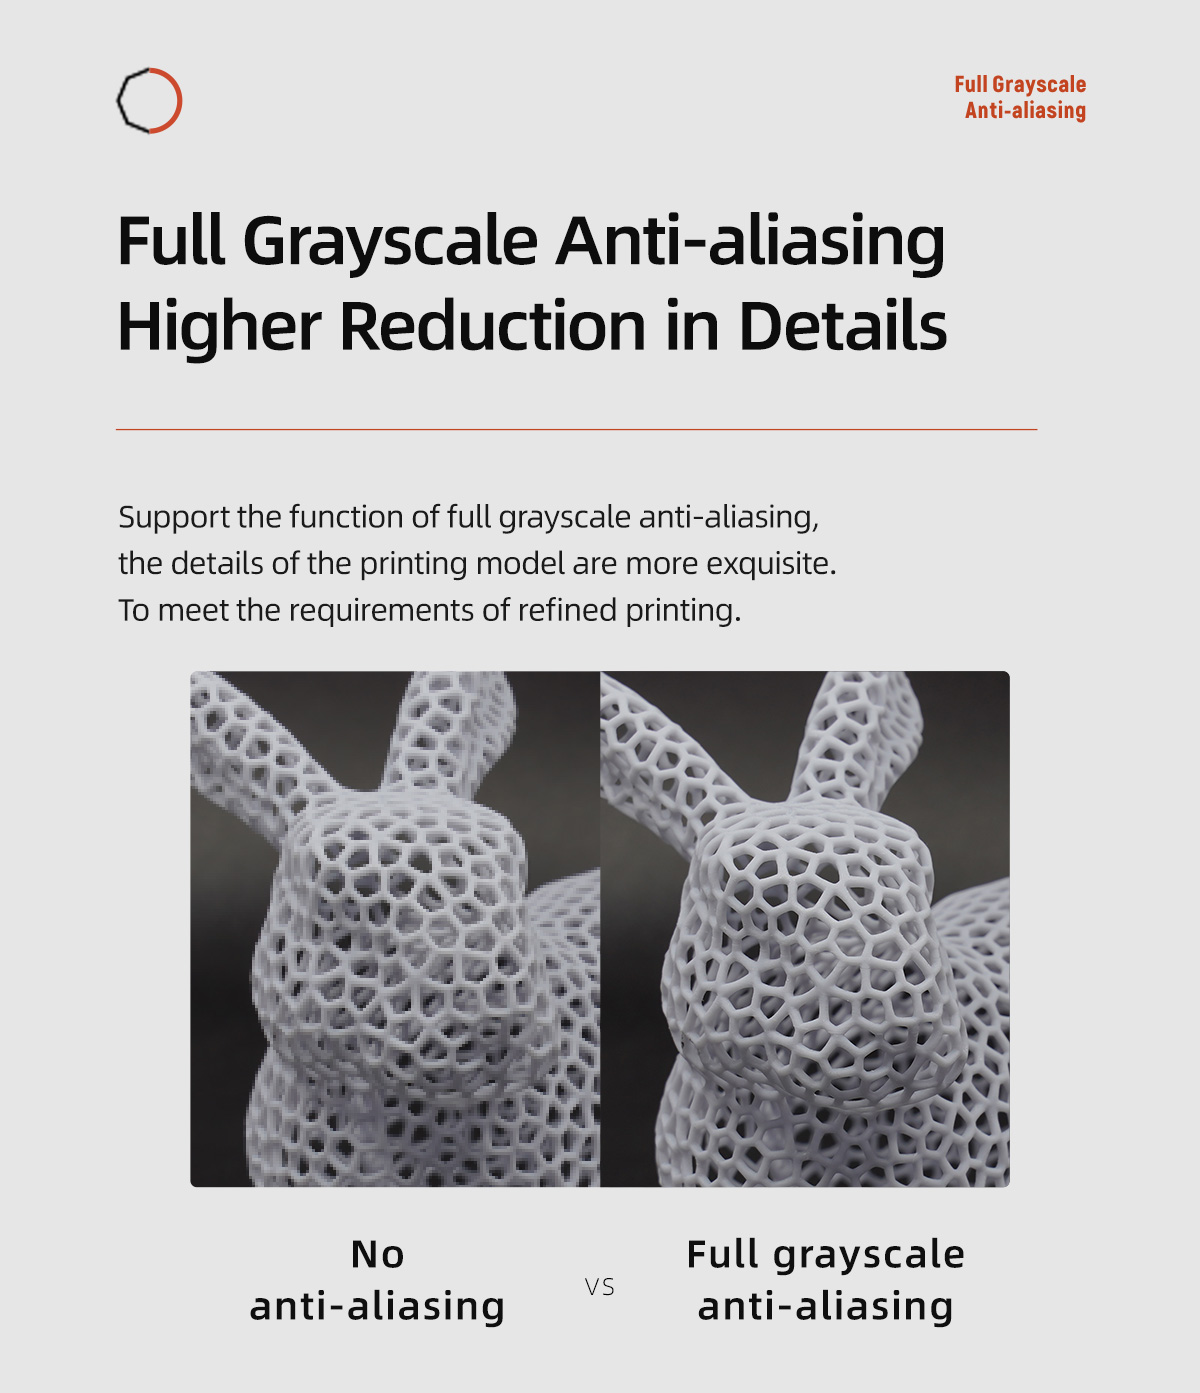 Support the function of full grayscale anti-aliasing, the details of the printing model are more exquisite To meet the requirements of refined printing